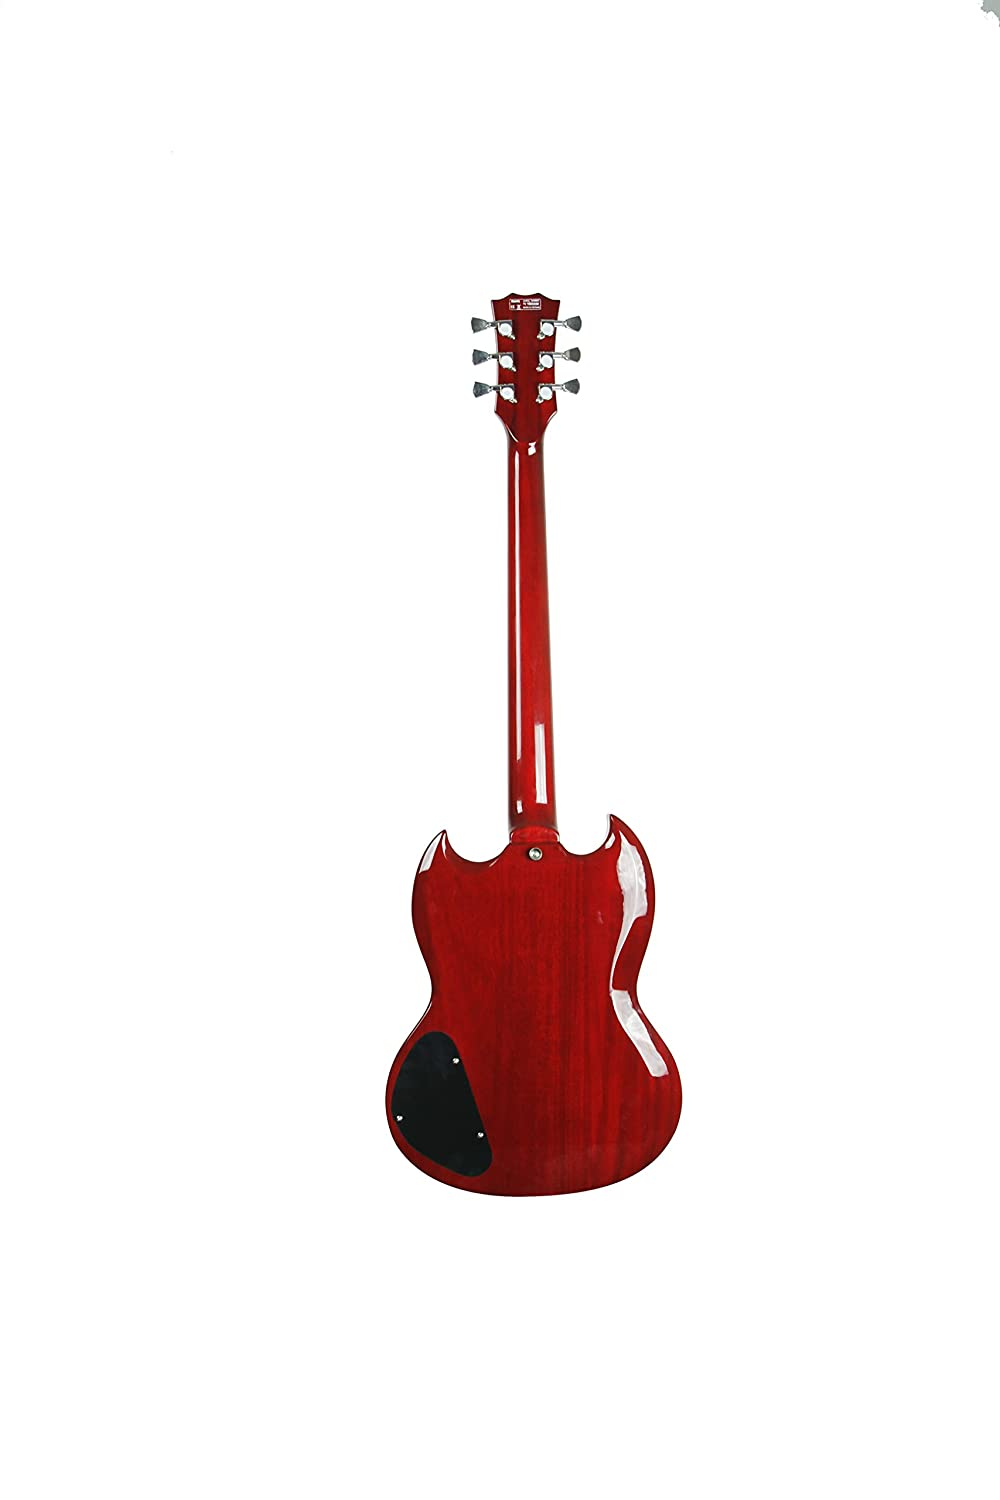 Amazon.com: ivy ISGV-200 Vibrato SG Solid-Body Electric Guitar, Cherry Red: Musical Instruments